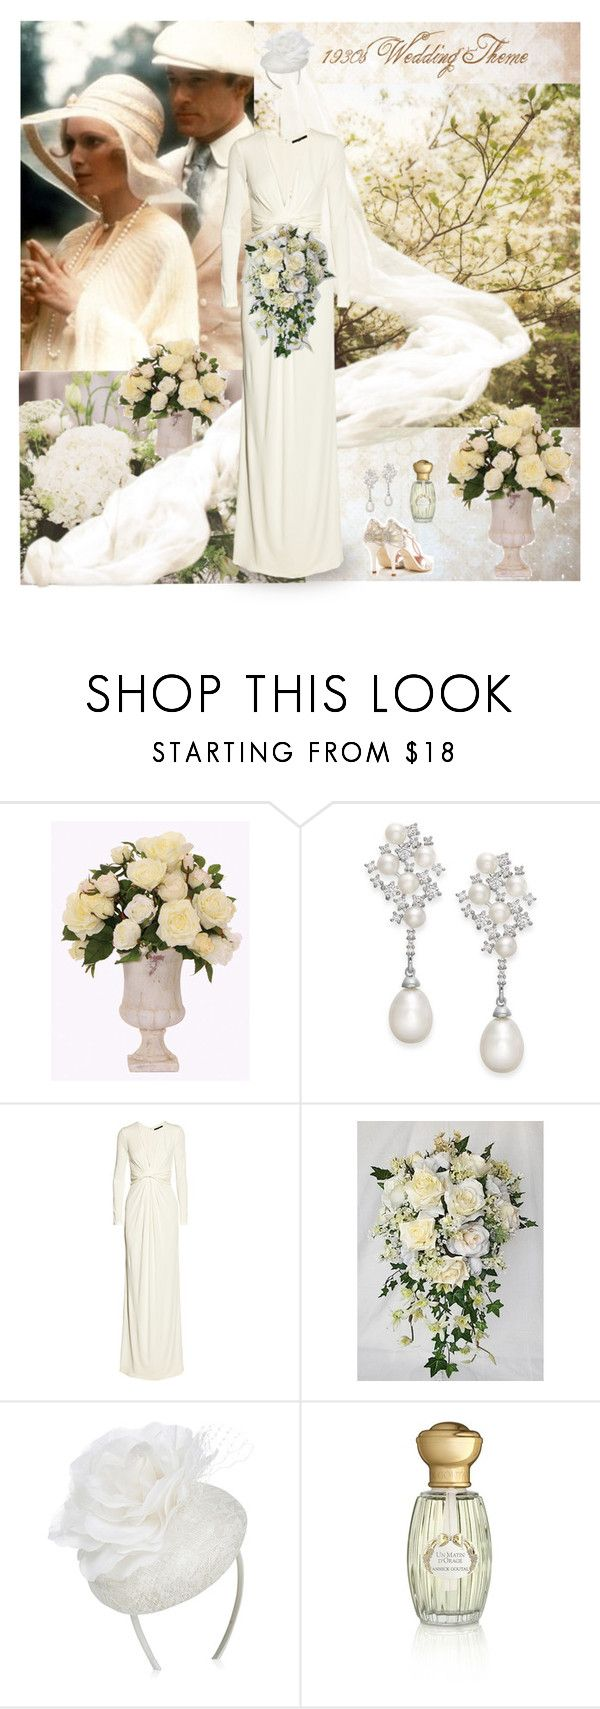 """""""1930s Wedding Theme"""" by dezaval ❤ liked on Polyvore featuring Lux-Art Silks, Arabella, Gucci, Accessorize, Annick Goutal and vintage"""